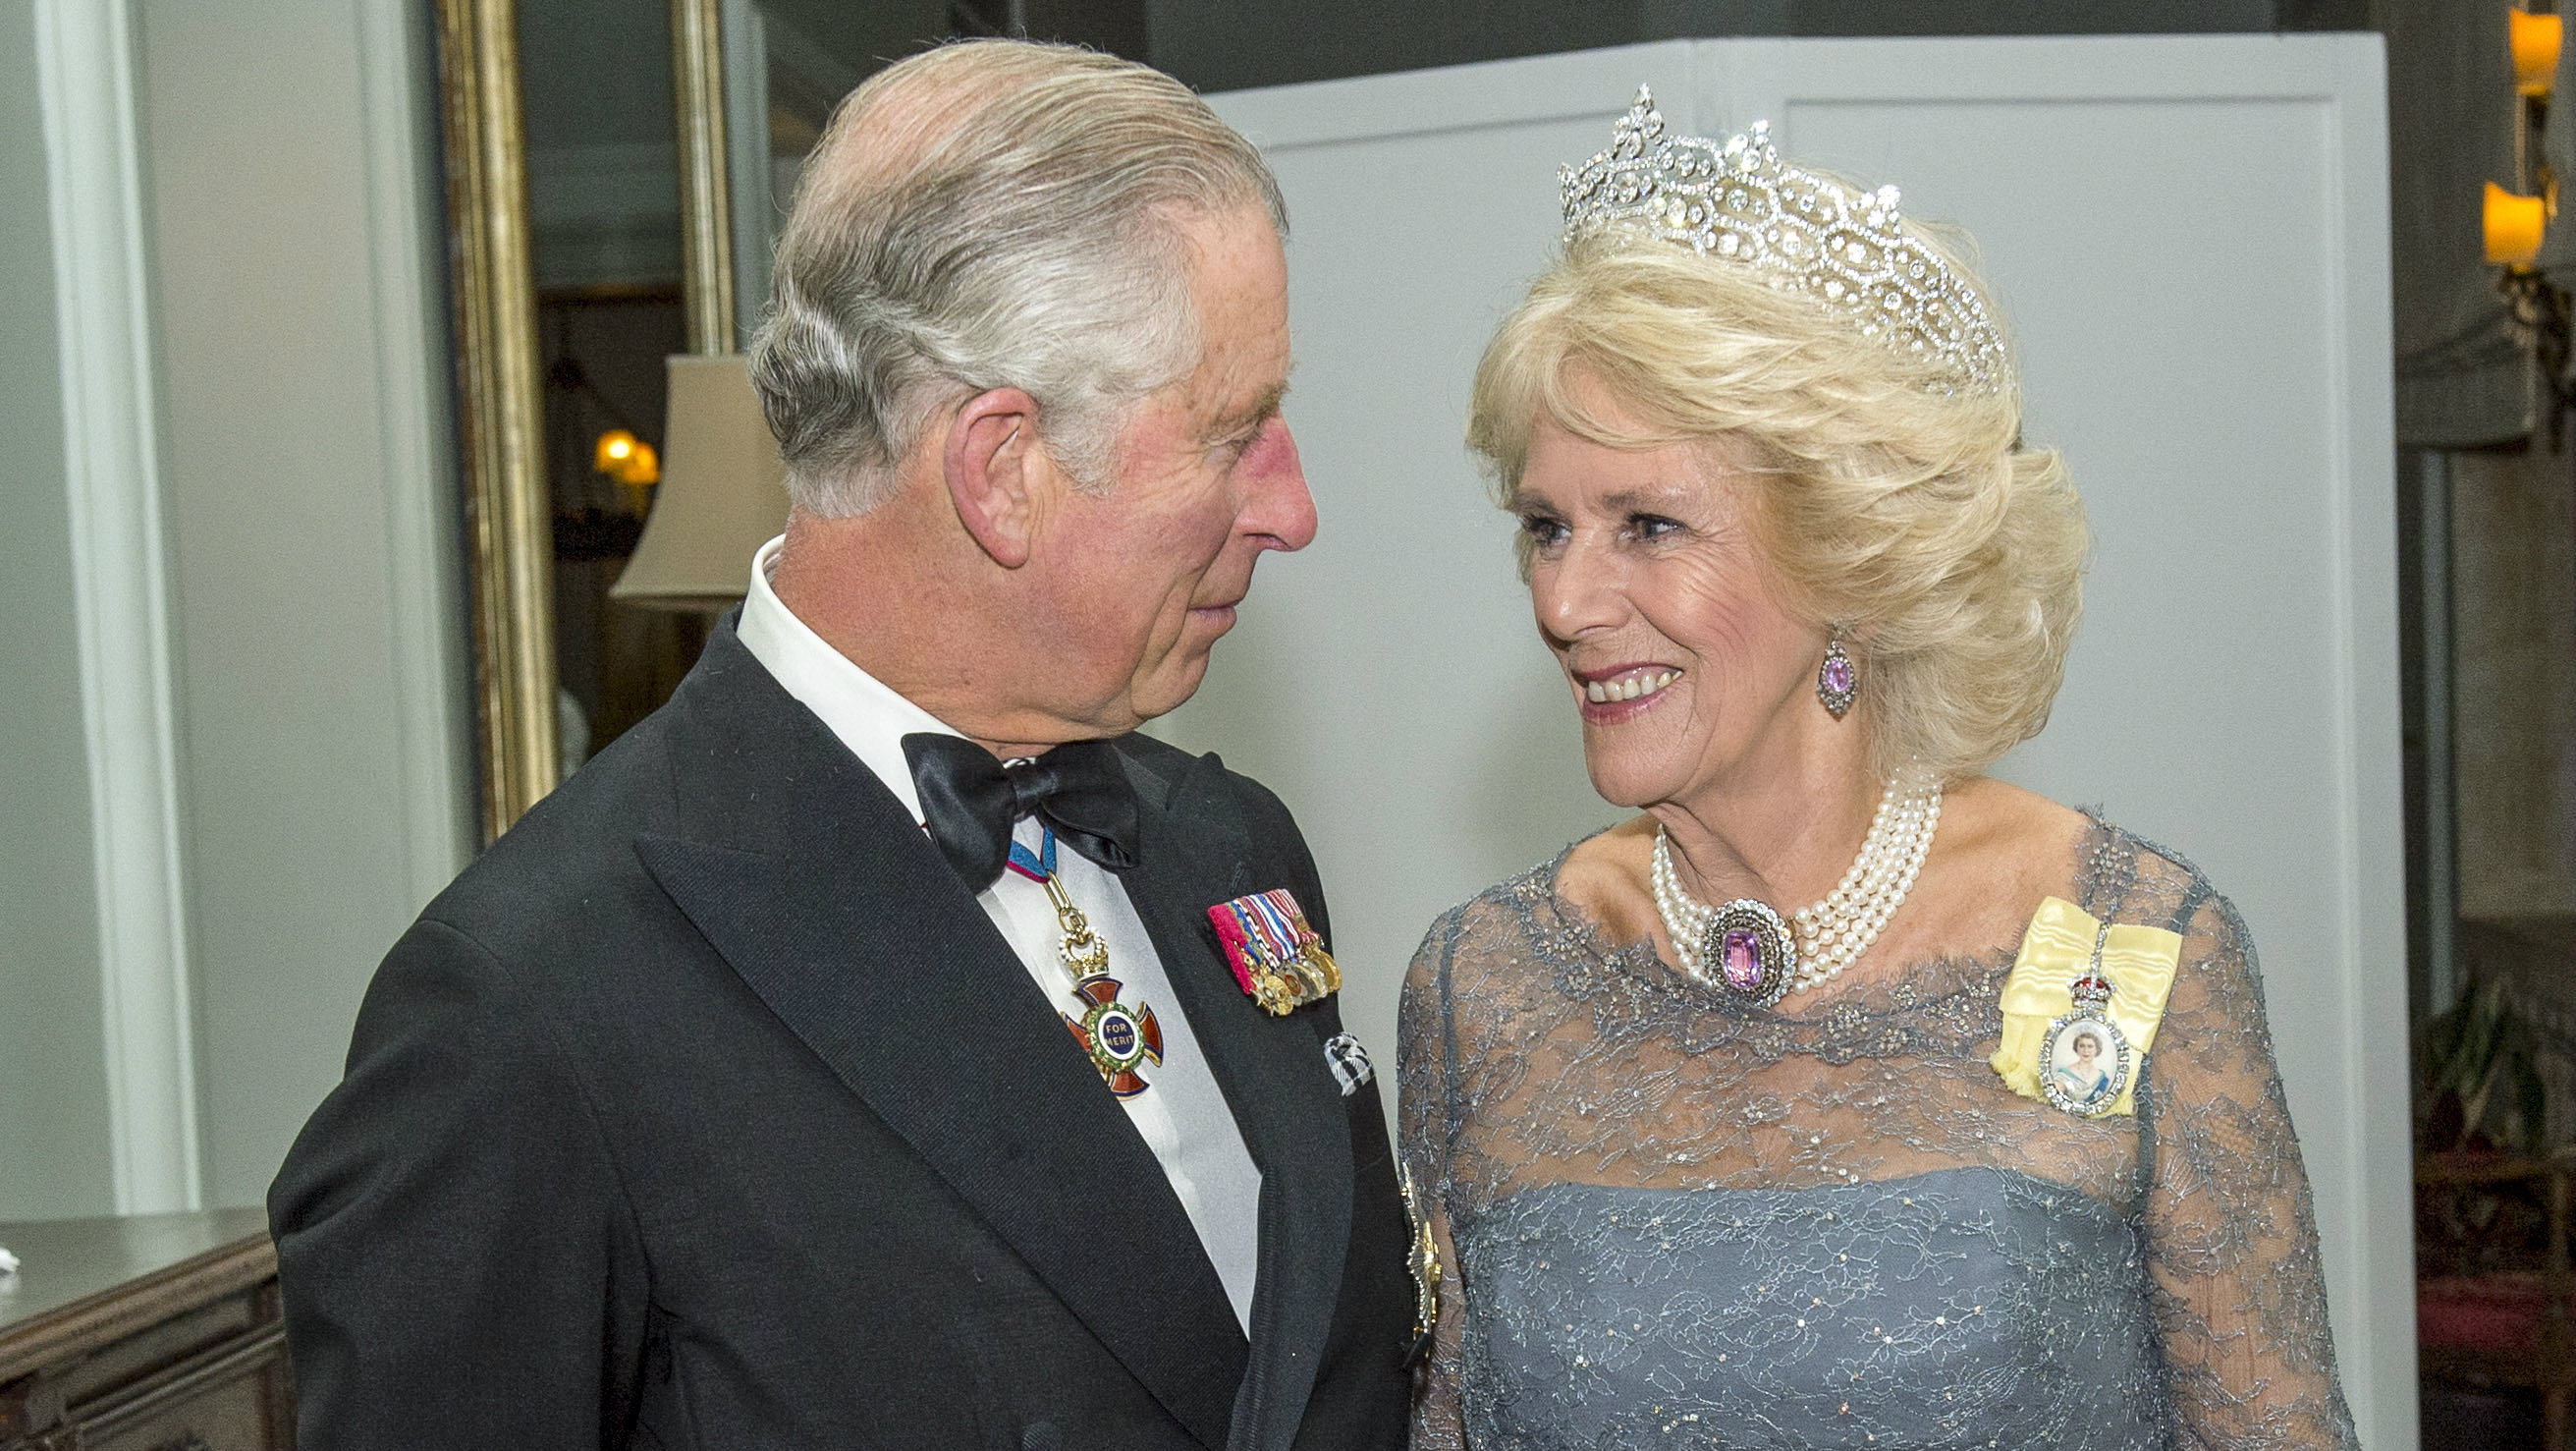 Prince Charles and Camilla waited a long time to get back together.